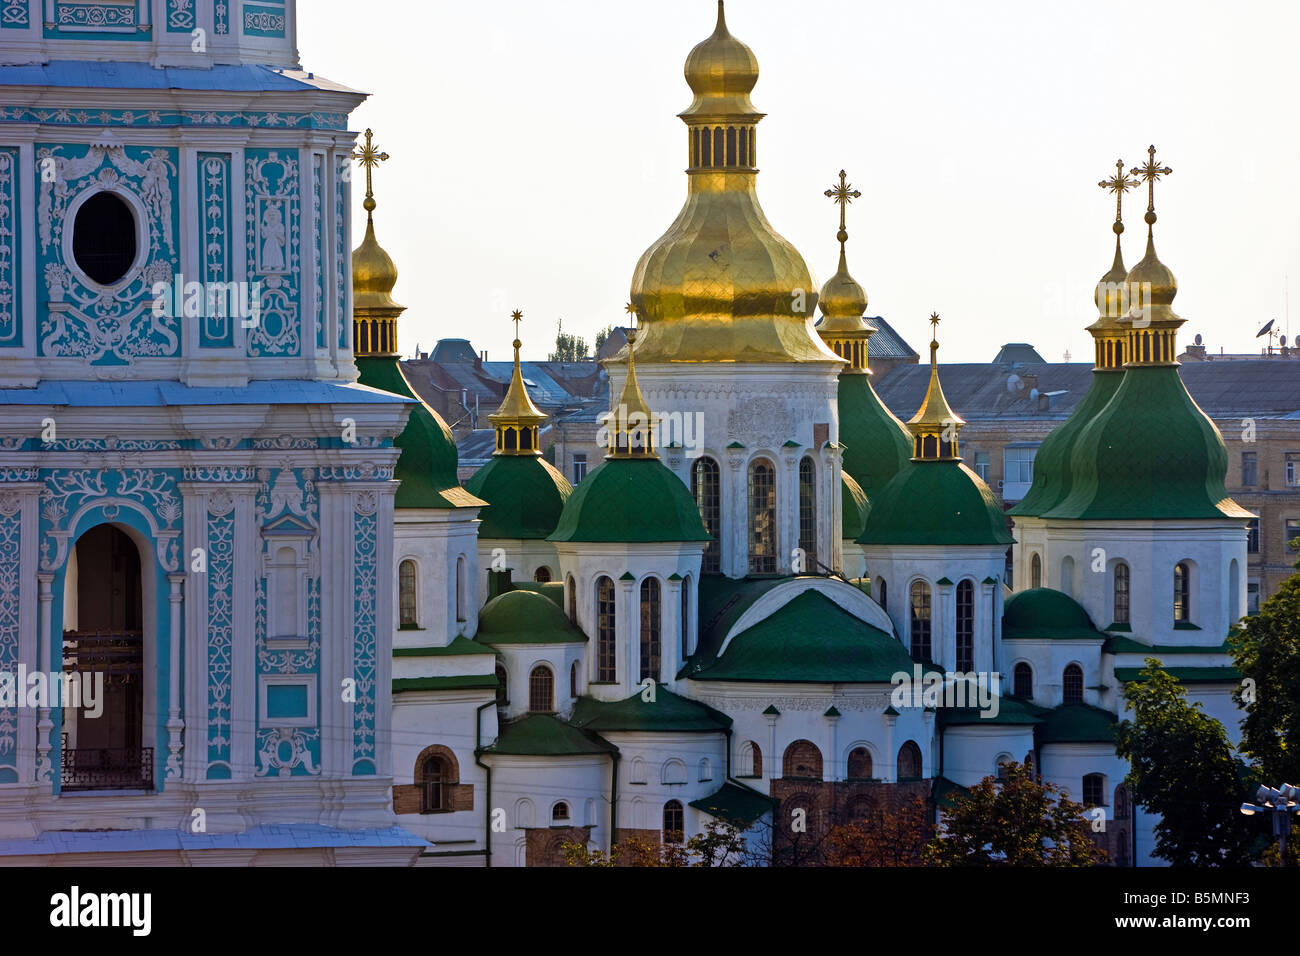 Green roof and gold domes of St Sophia Cathedral, Kyiv, Kiev, Ukraine, Eastern Europe - Stock Image